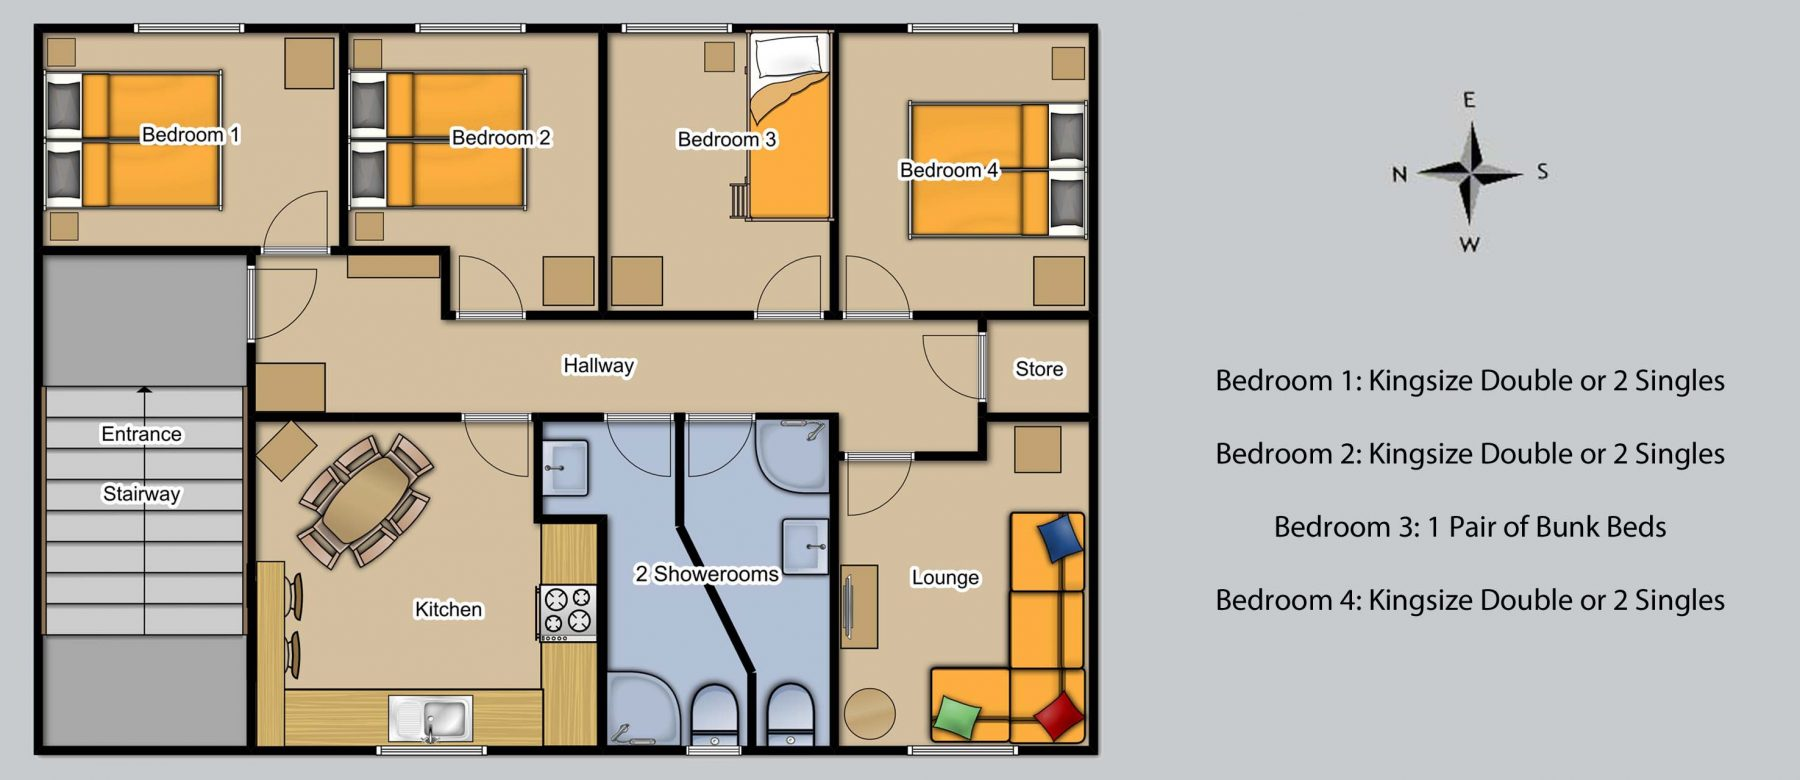 Floor plan for Harbour View 4